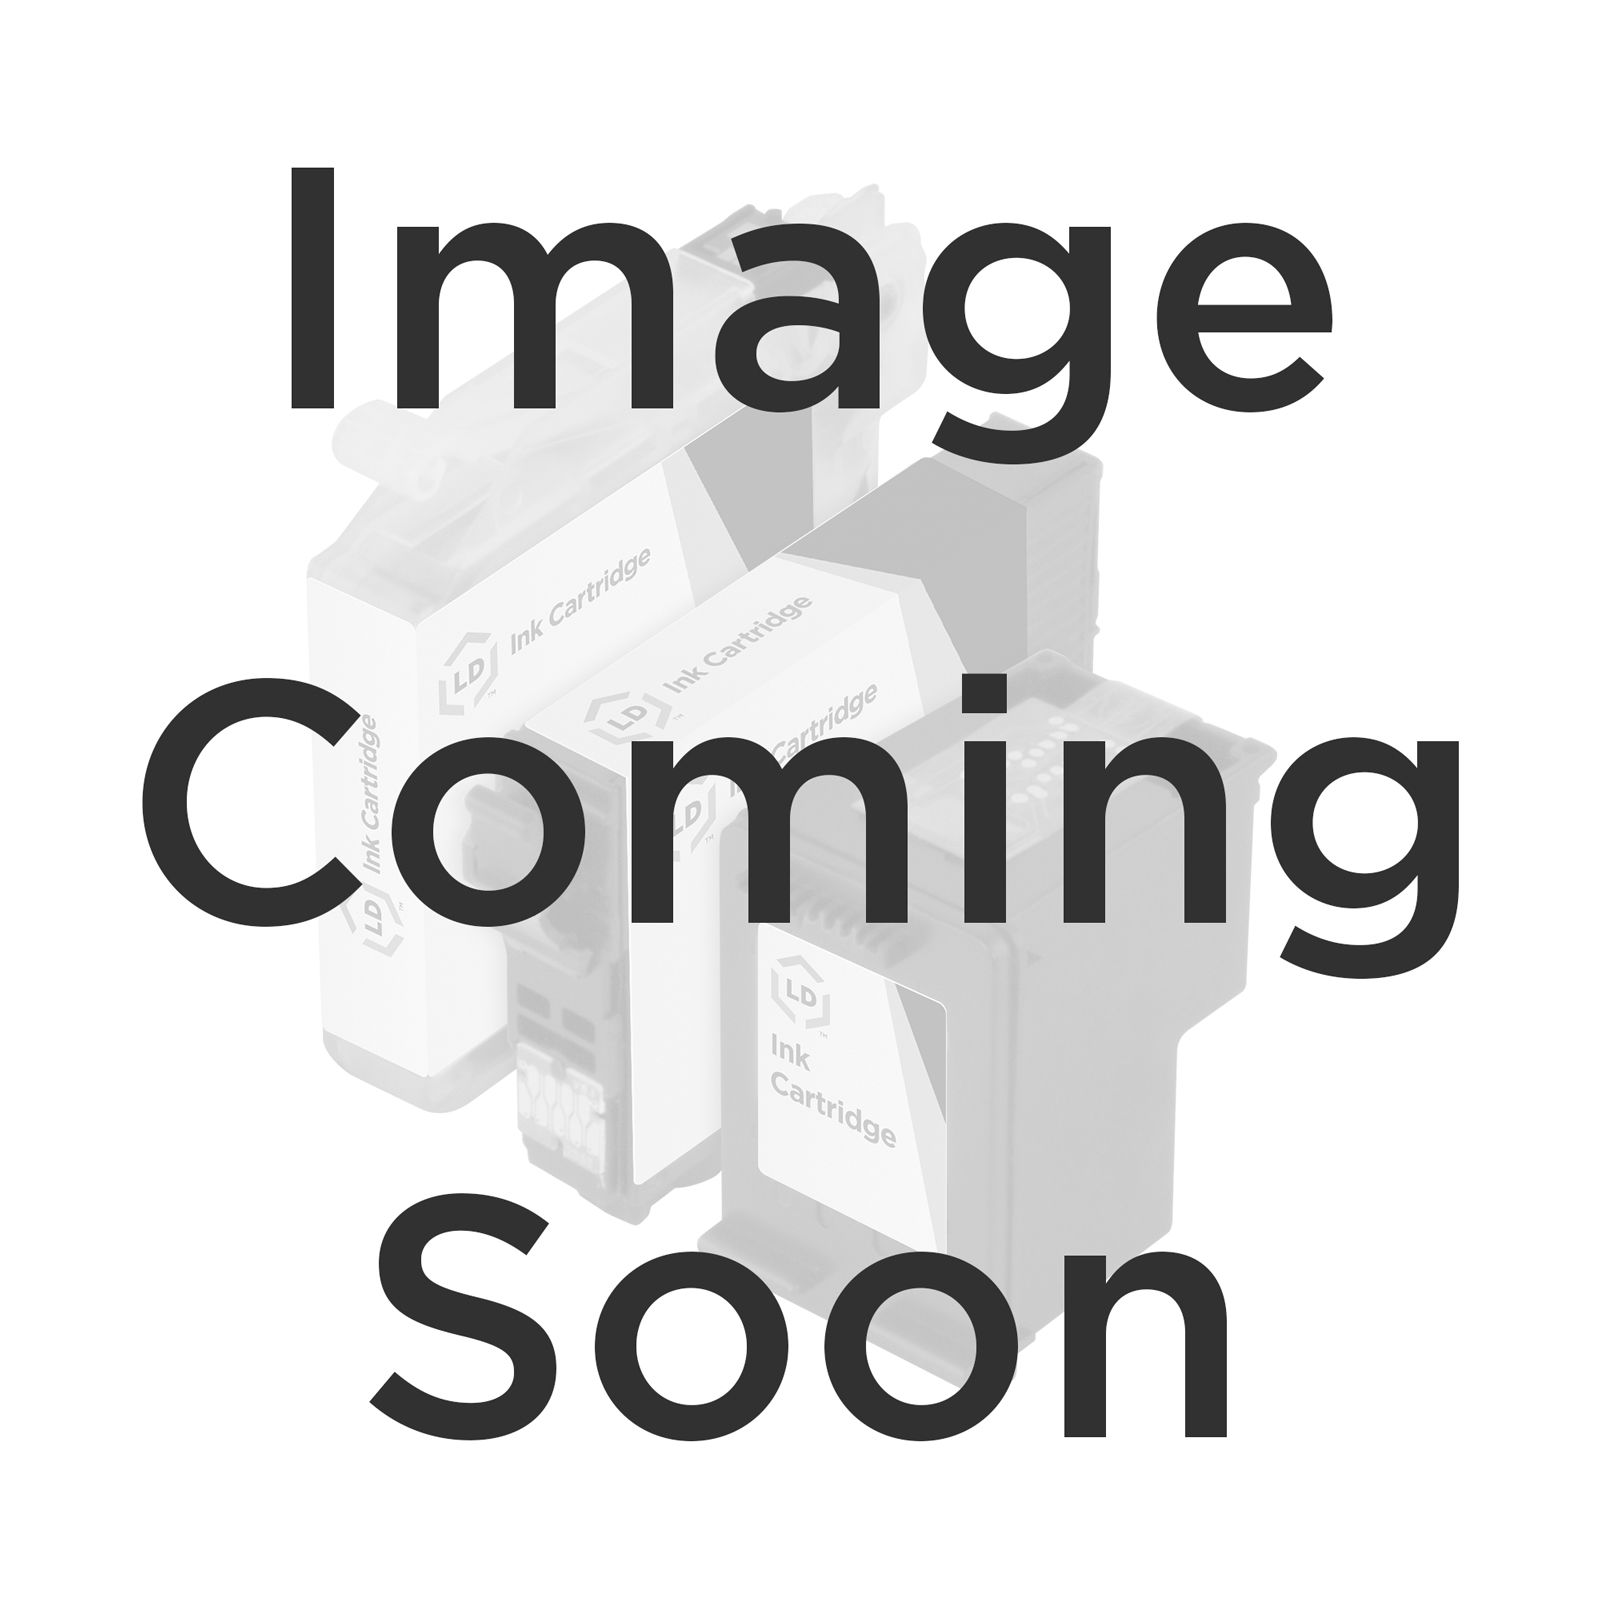 "Roaring Spring Genesis Spiral bound Fat Notebook - 200 Sheet - College Ruled - 5.50"" x 4.25"""